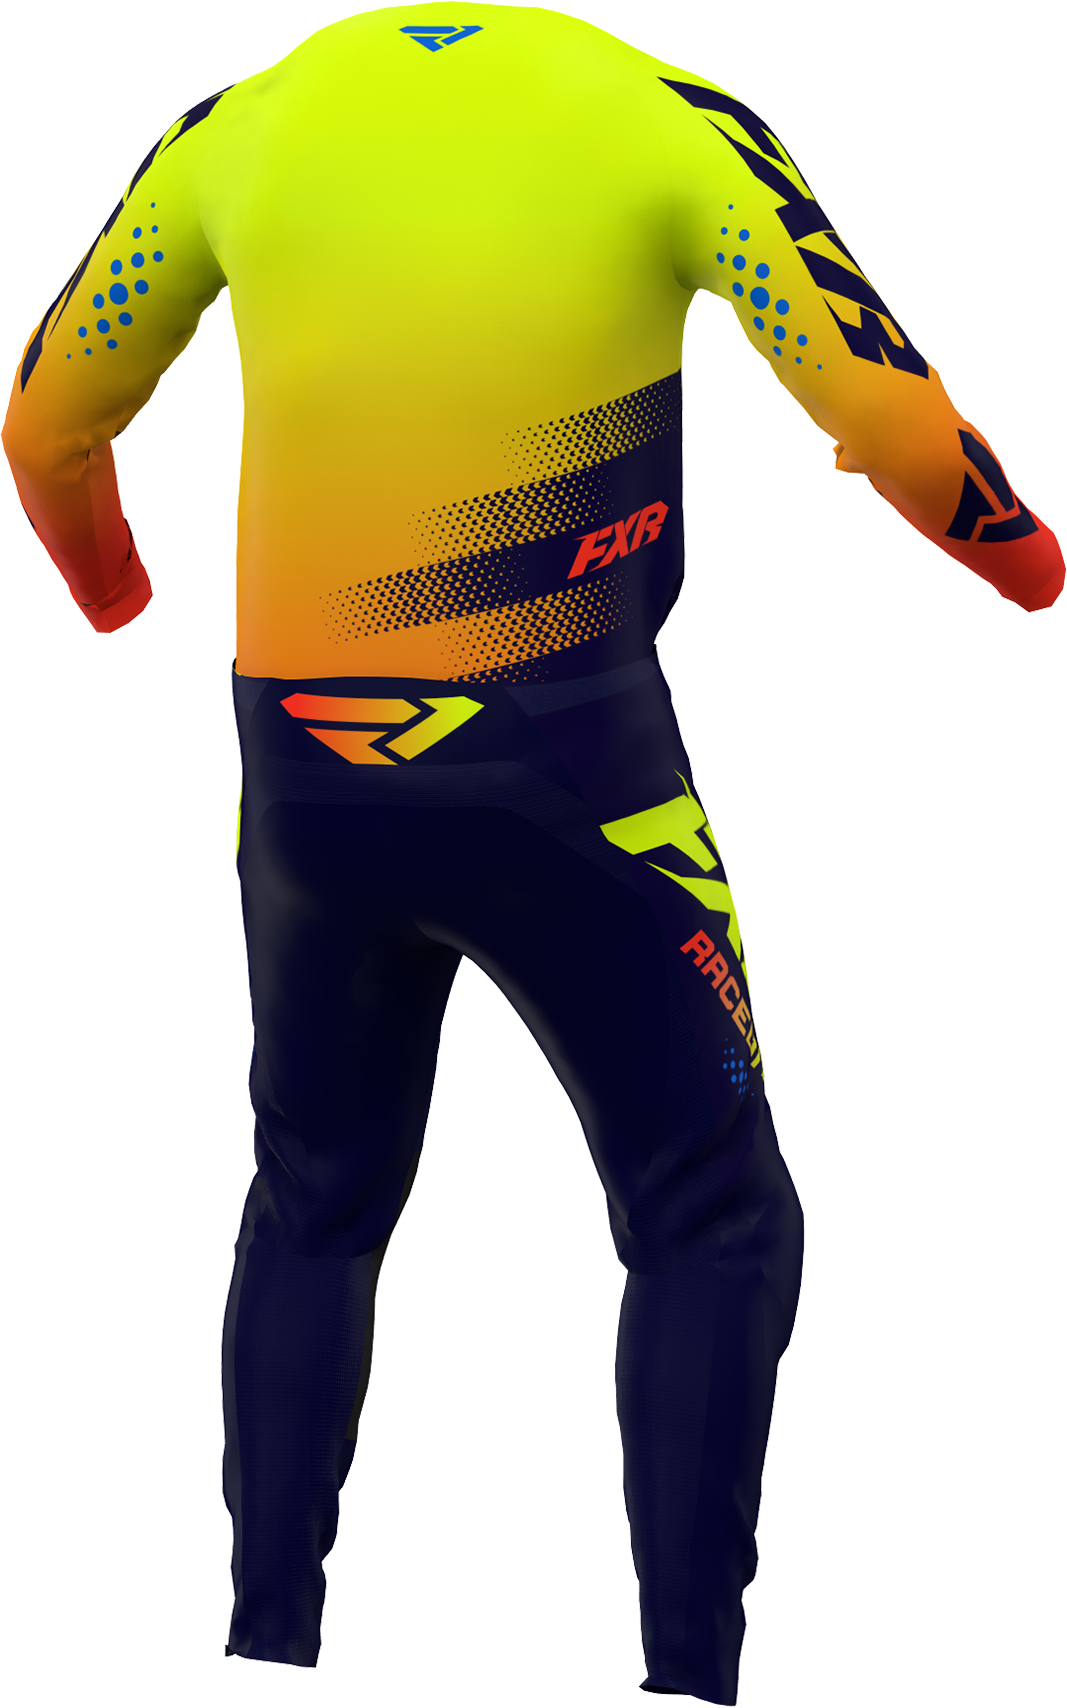 A 3D image of FXR's Clutch MX Jersey and Pant 22 in Midnight / Hivis / Nuke Red